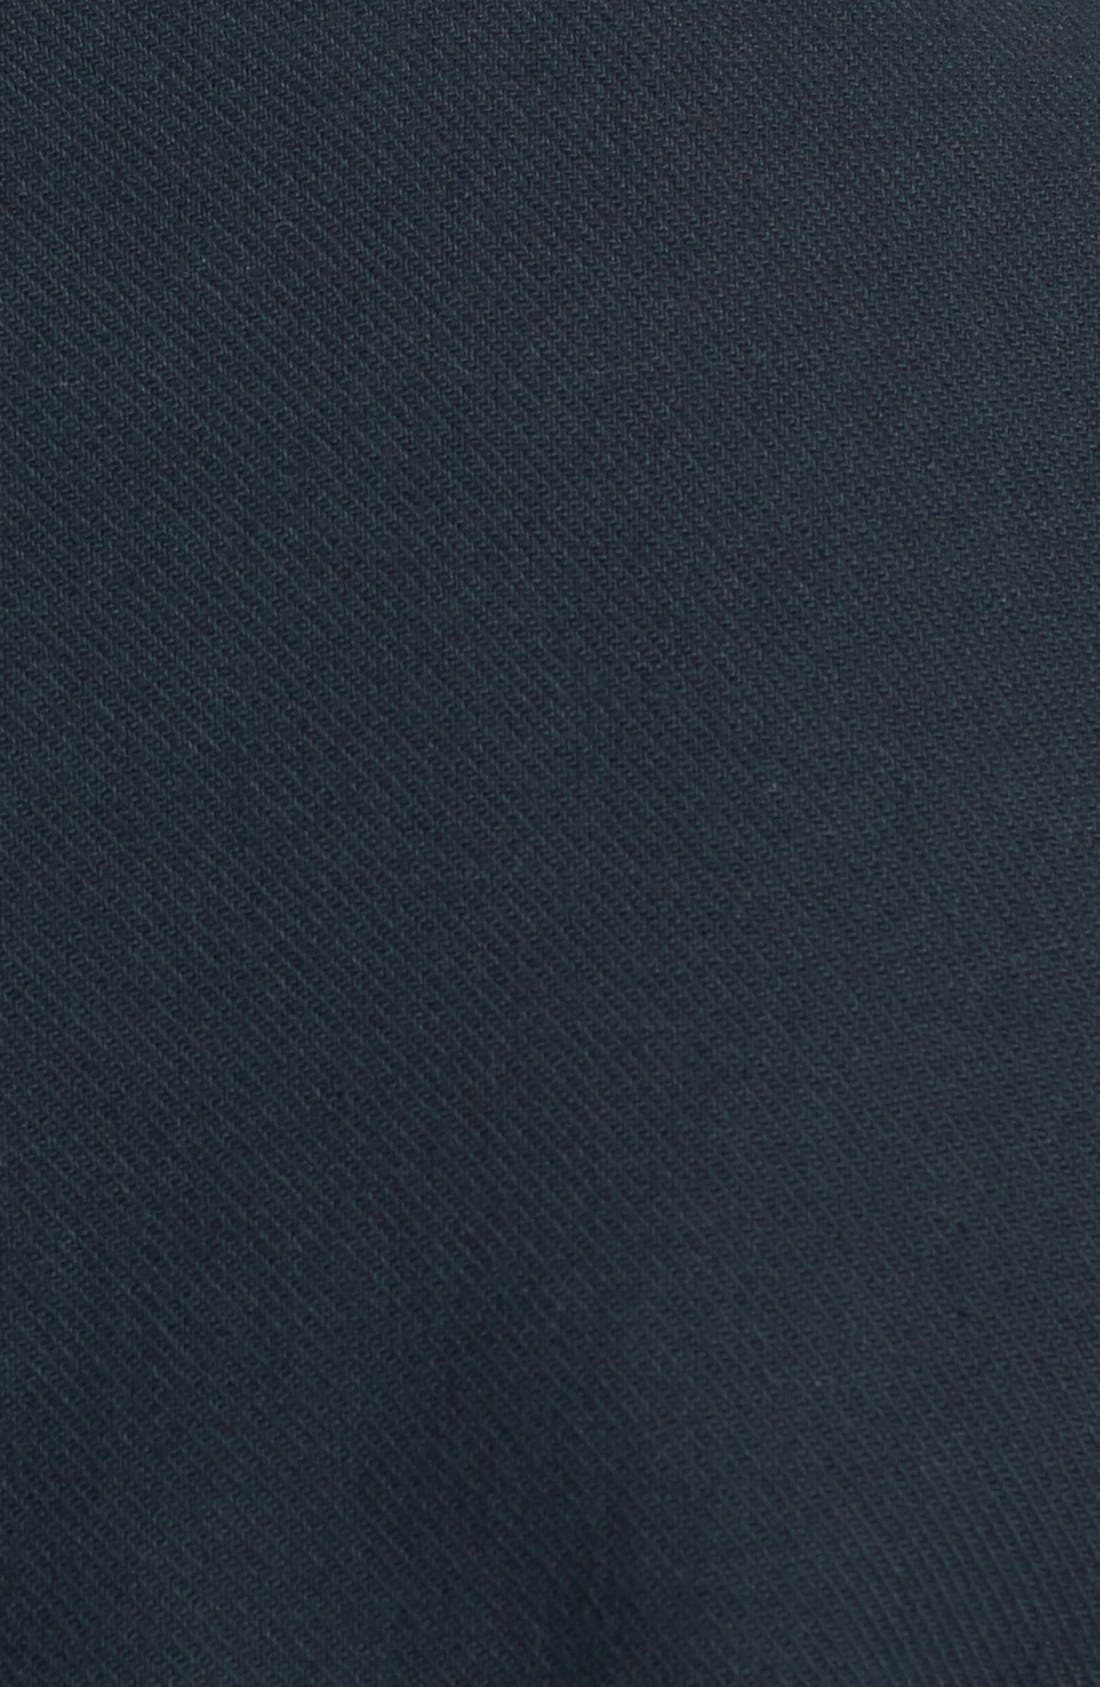 Alternate Image 3  - G-Star Raw 'Correct' Work Shirt